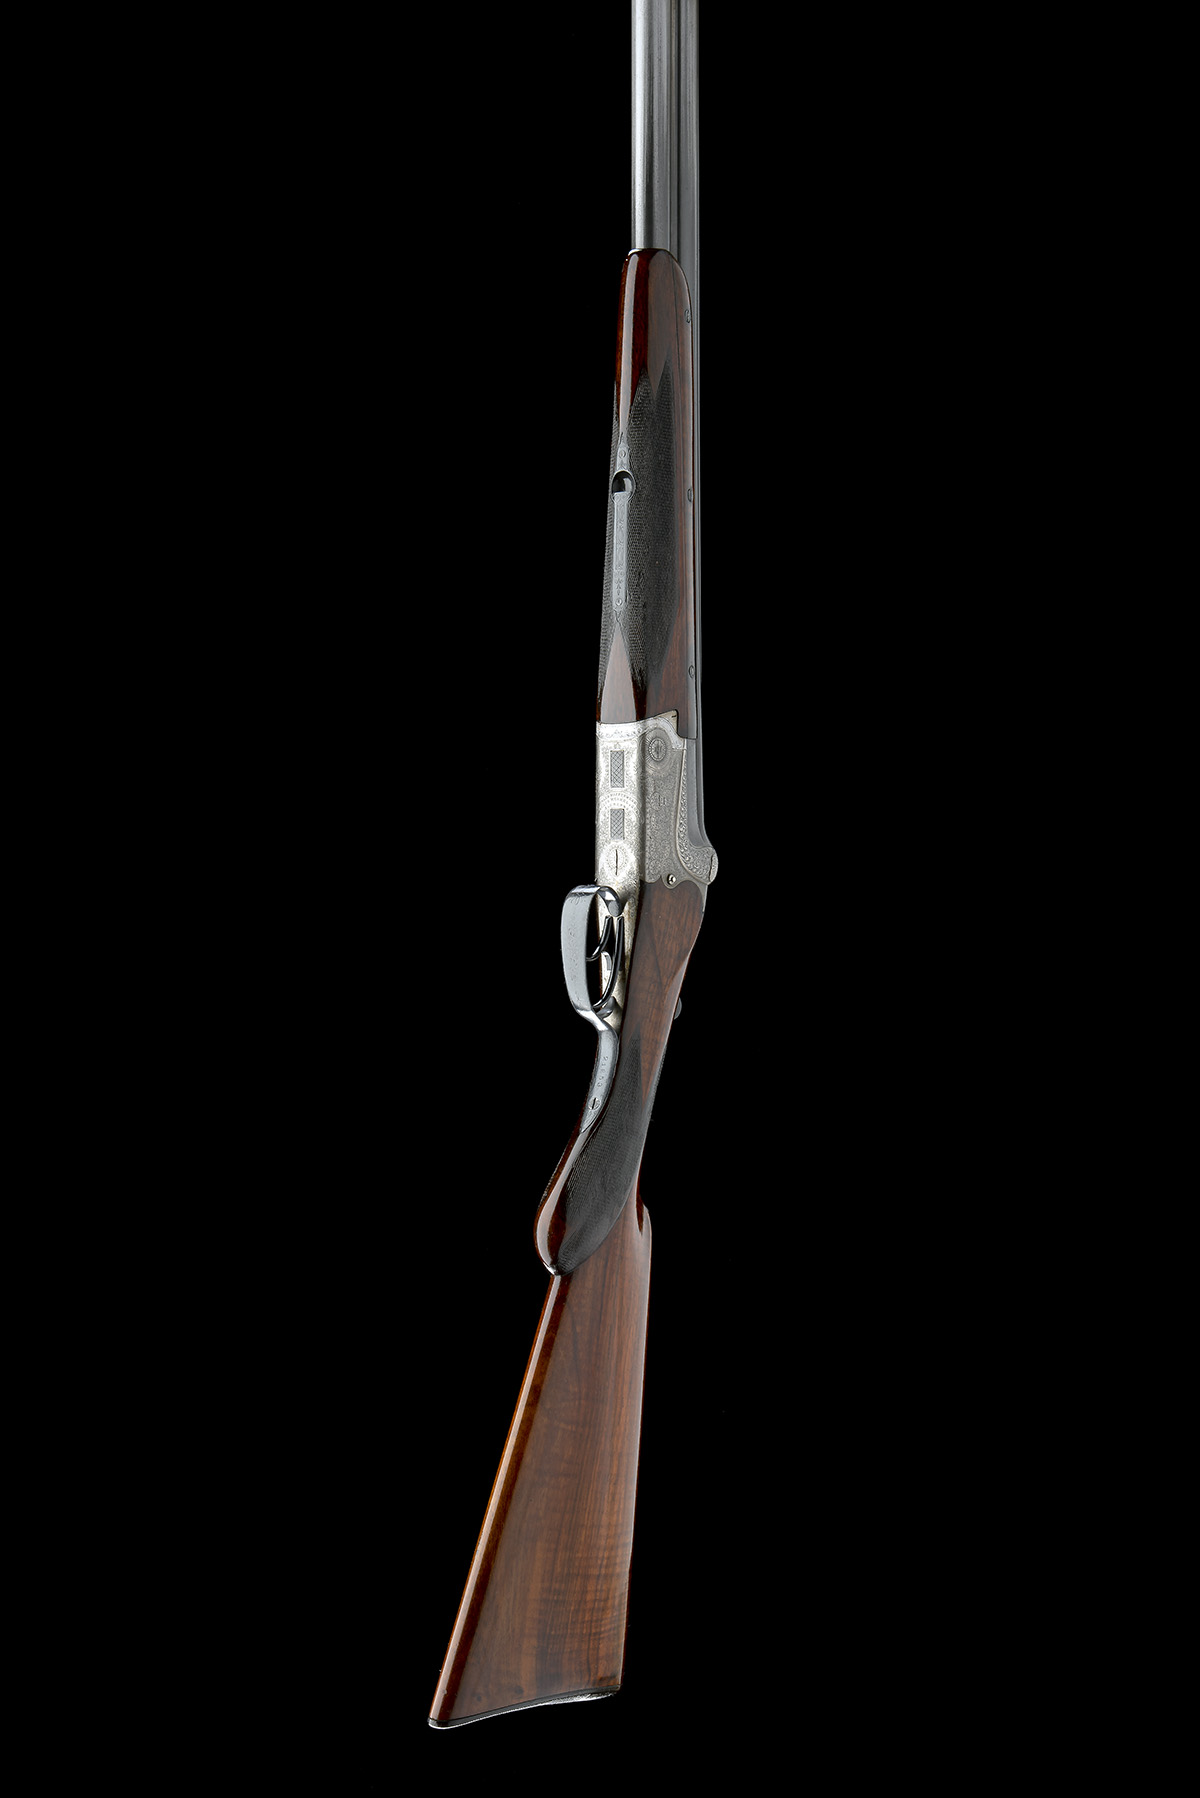 GEBRUDER MERKEL A 12-BORE DOUBLE-TRIGGER OVER AND UNDER EJECTOR, serial no. 21653, for August - Image 8 of 8